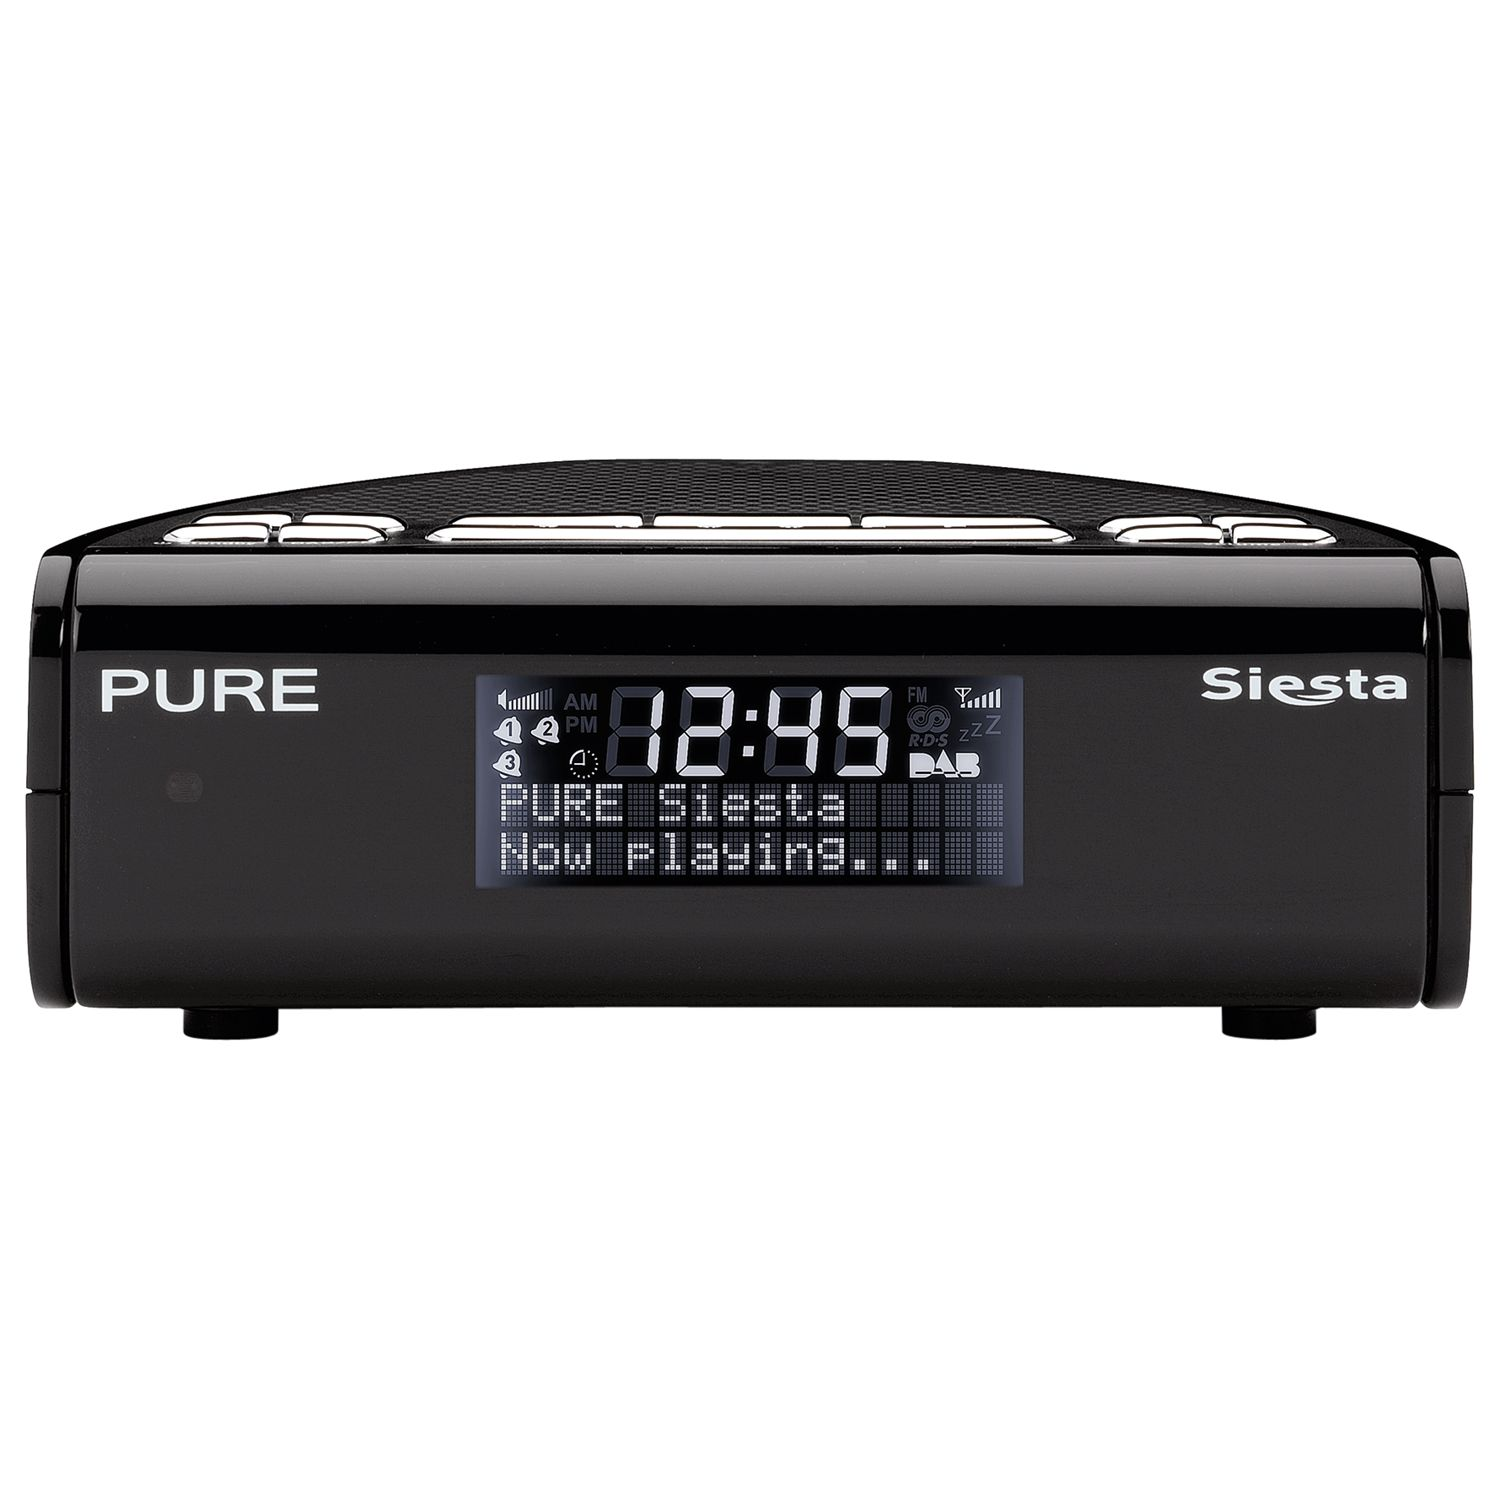 pure siesta dab digital clock radio black. Black Bedroom Furniture Sets. Home Design Ideas